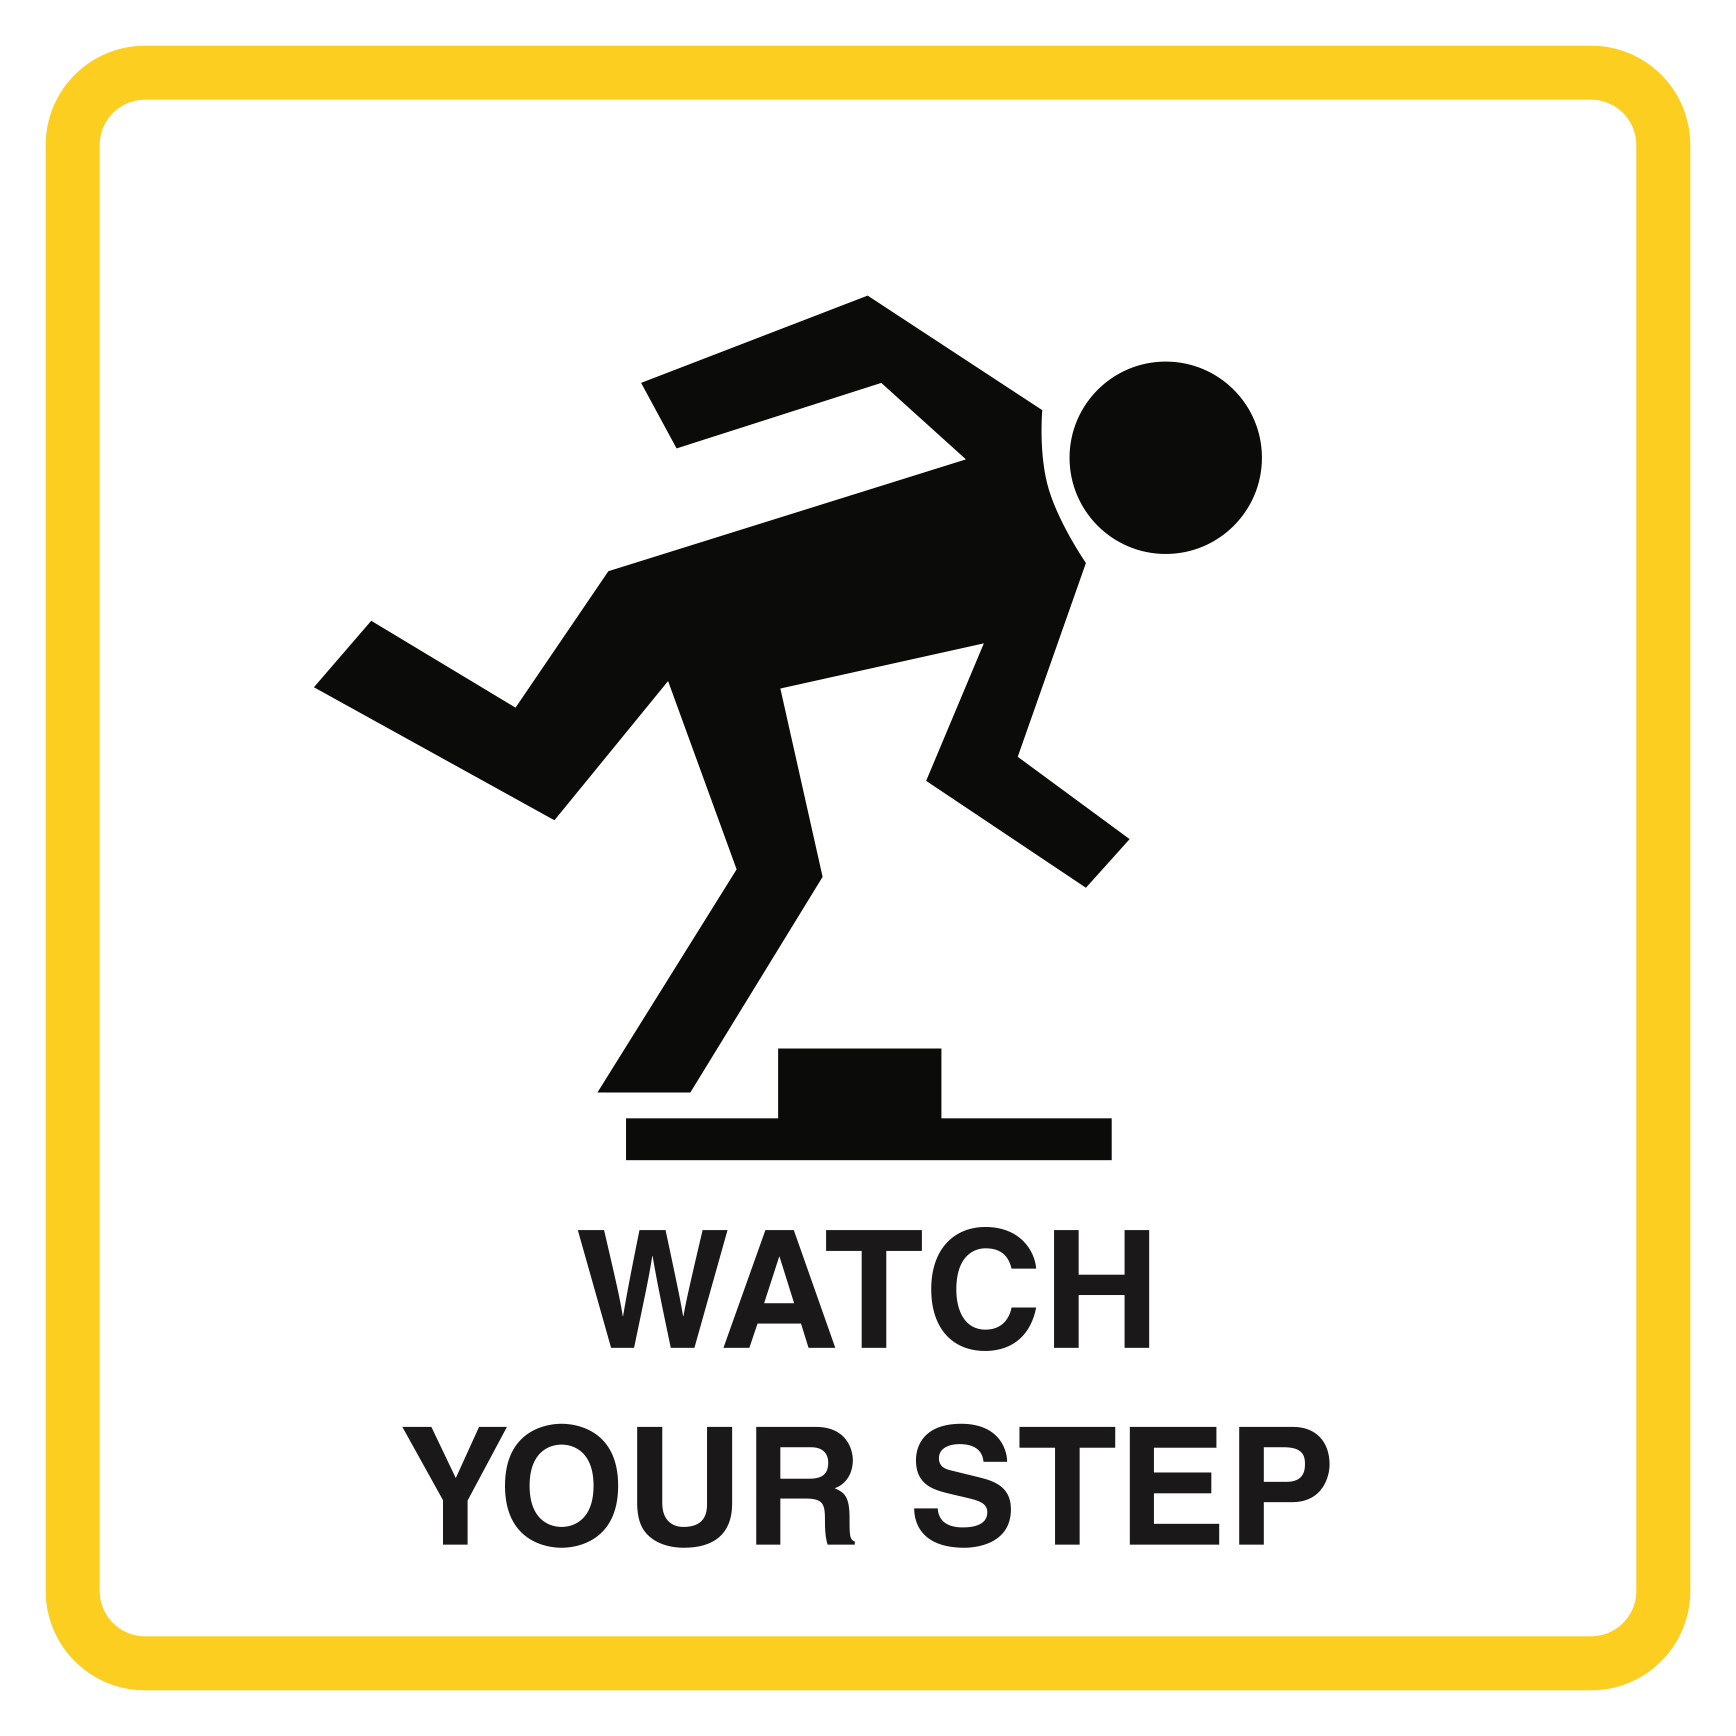 Aluminum Watch Your Step Picture Caution Notice Business ...